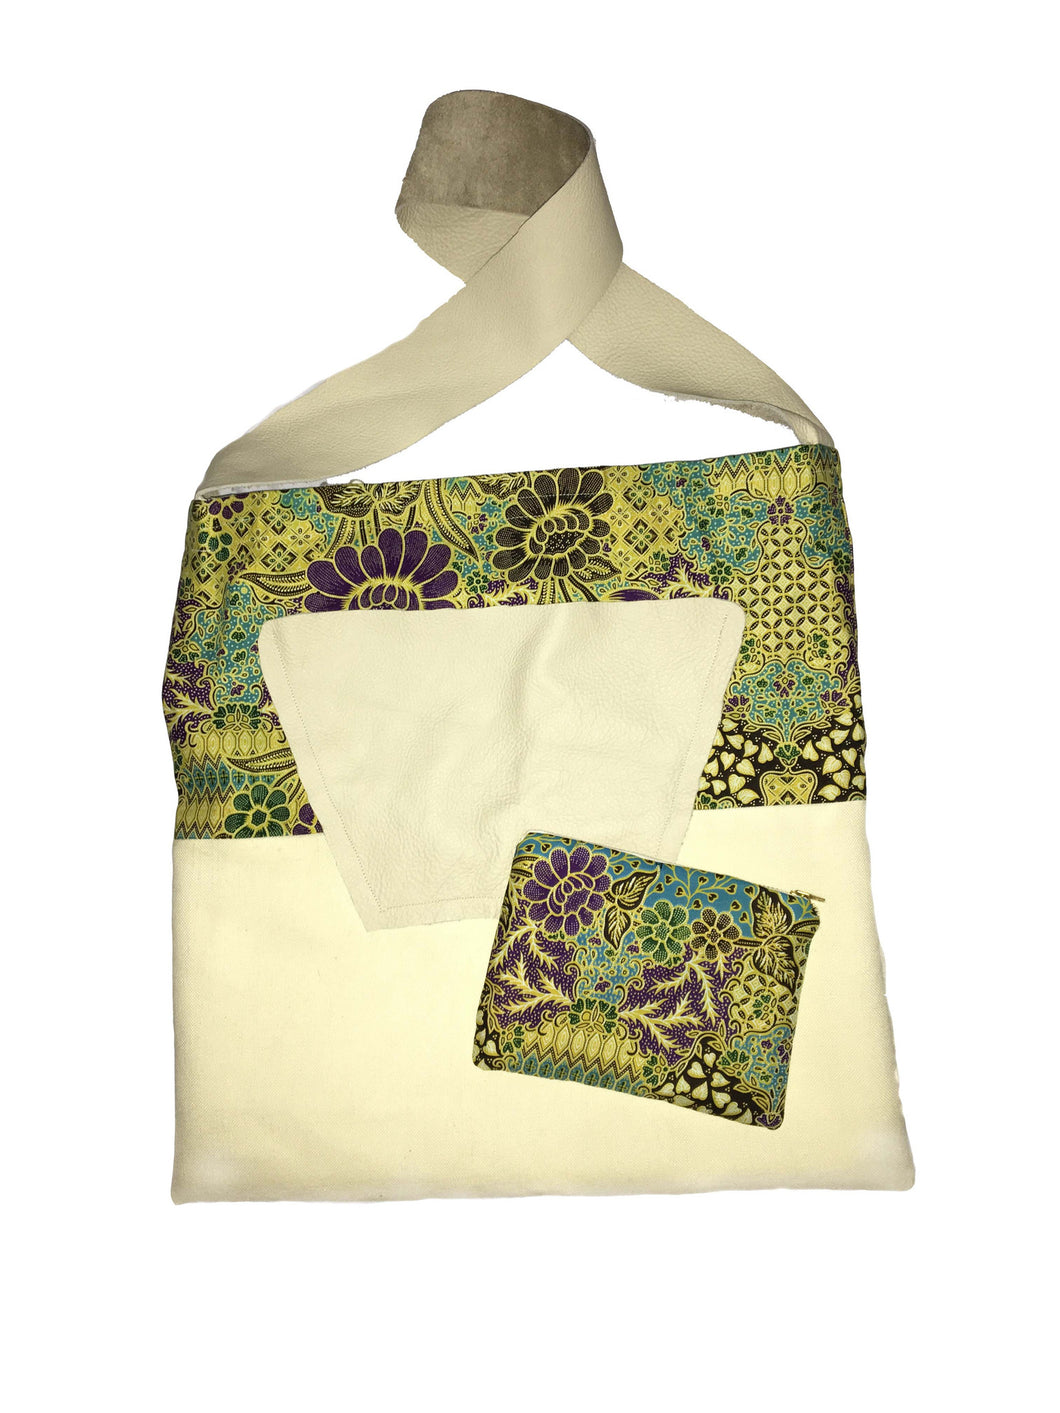 Handmade African Print  and Canvas Tote, Travel Bag, Diaper Bag, Carry-All, Cross-body Bag with big leather pocket and leather strap and matching pouch